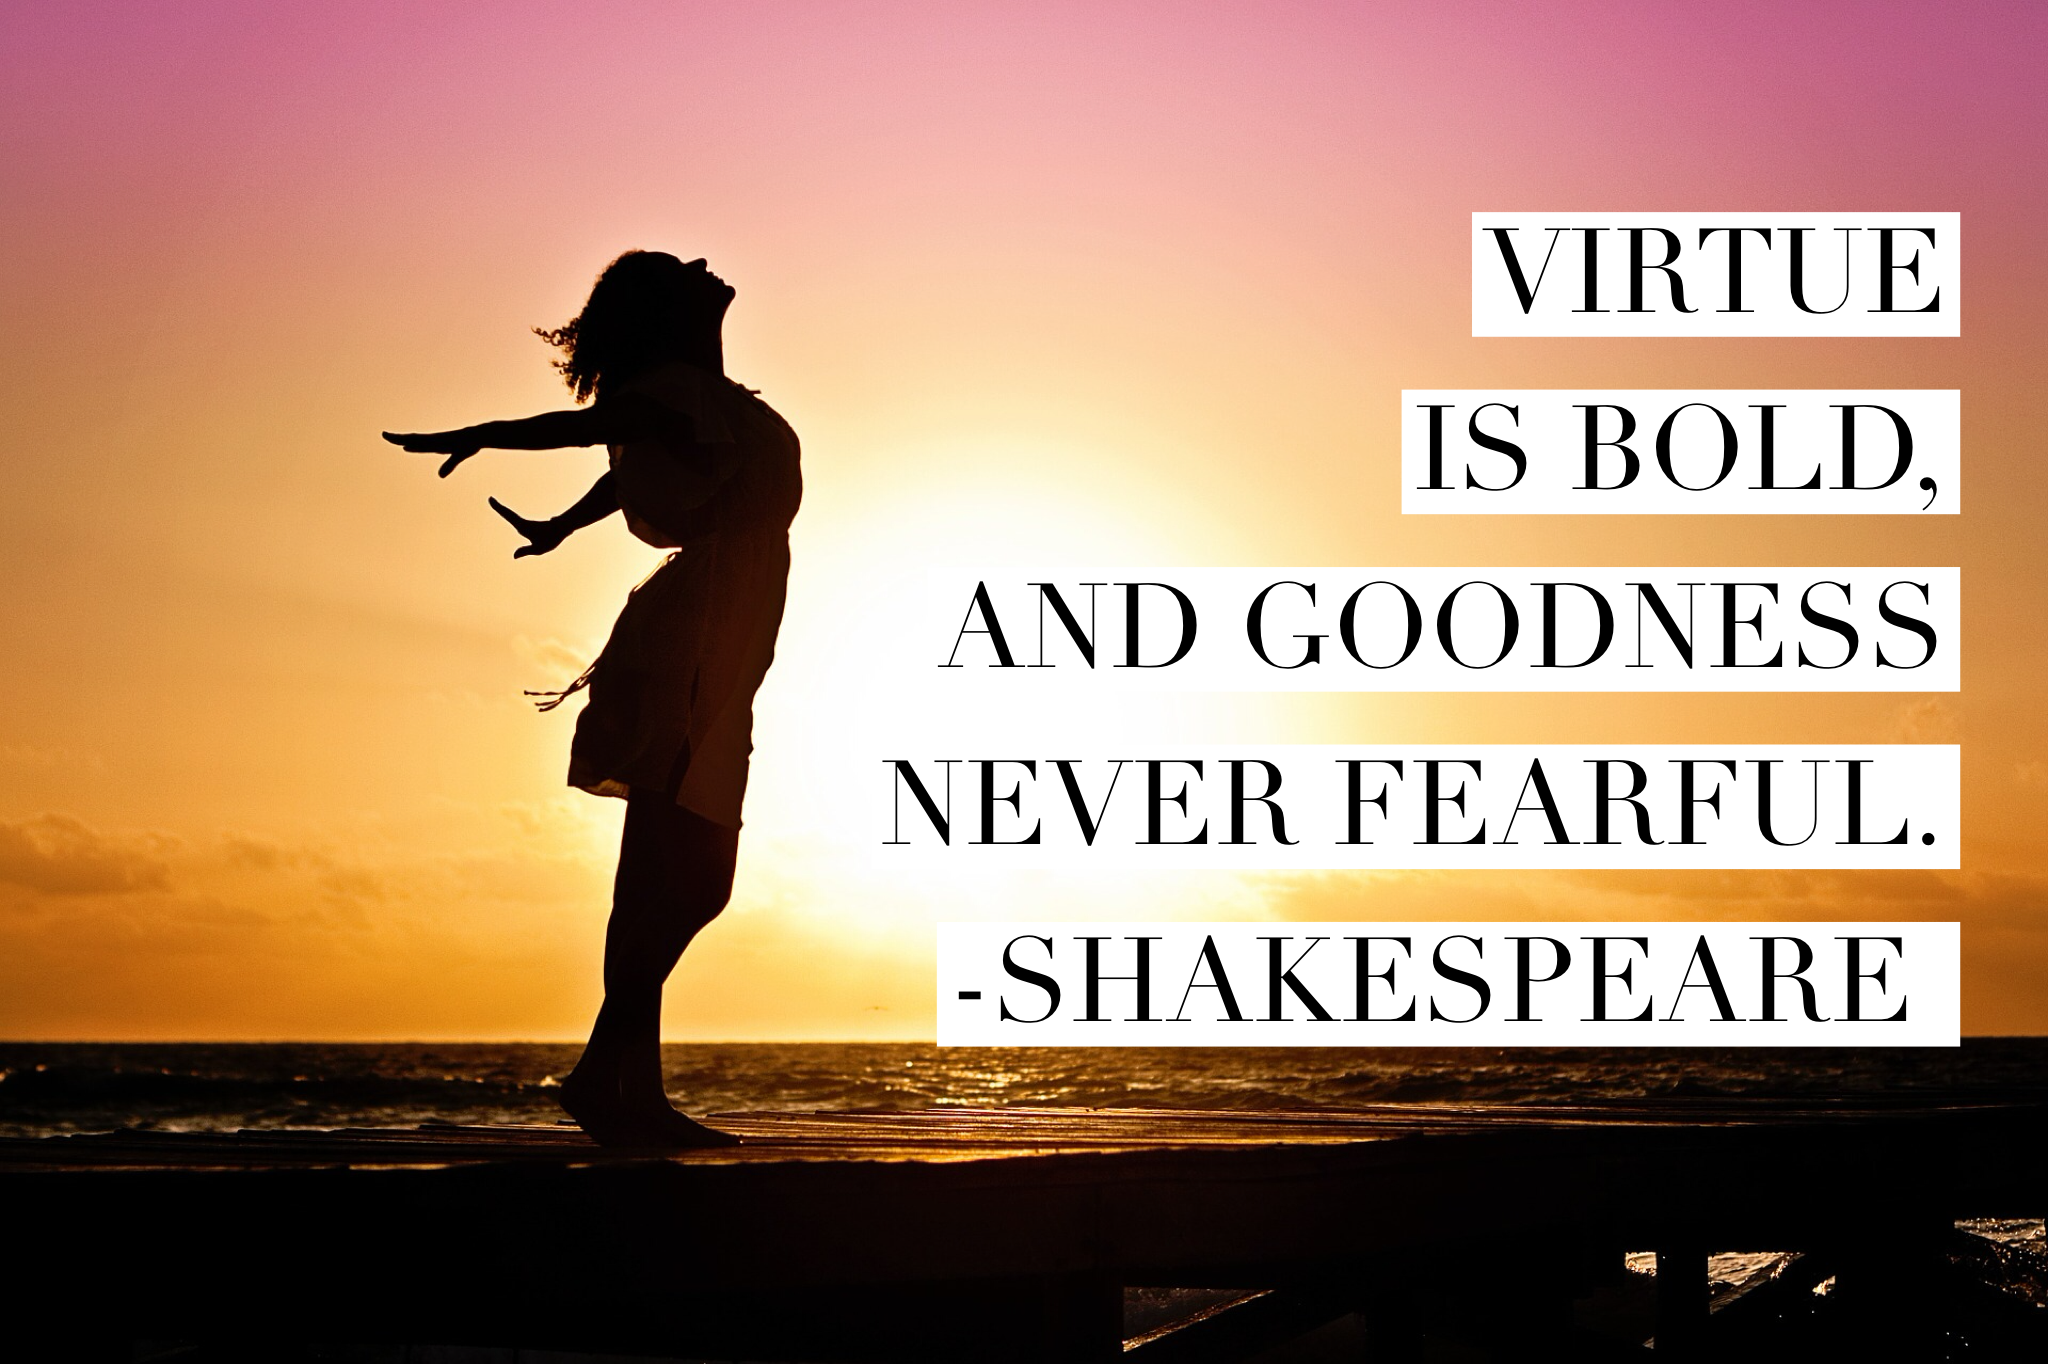 7 Quotes on Goodness That Will Make You Think